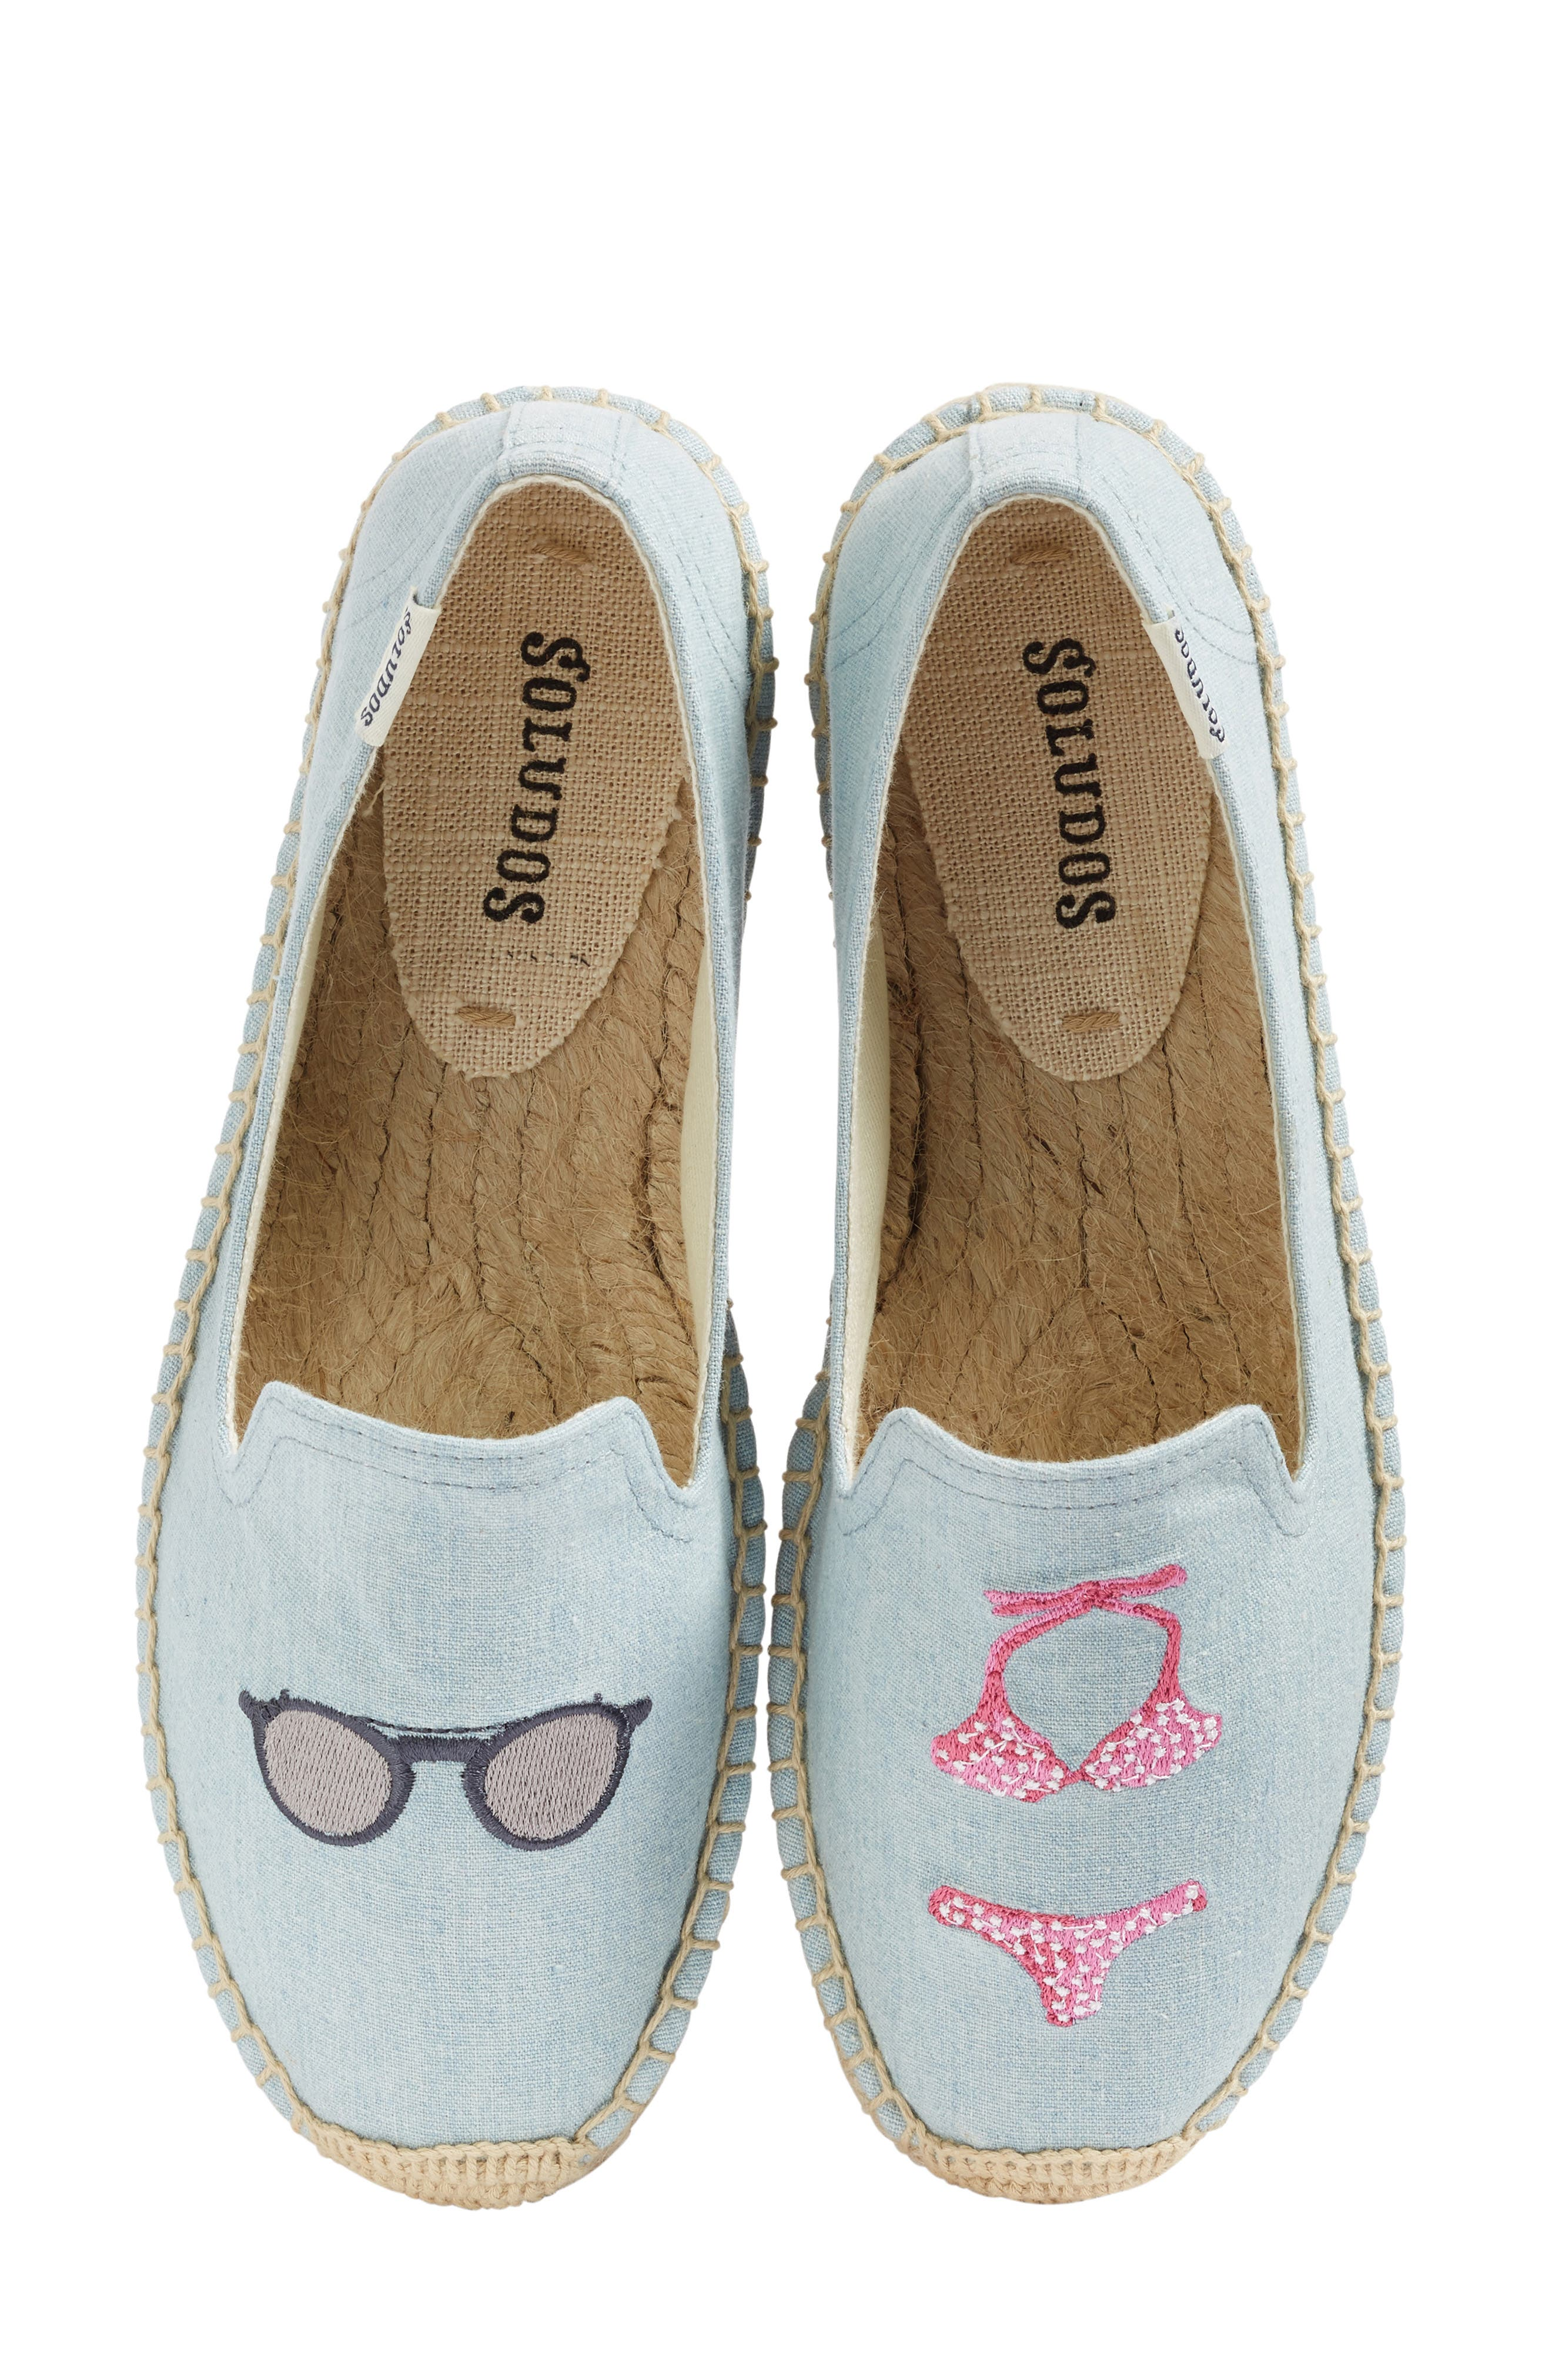 Alternate Image 1 Selected - Soludos Embroidered Flat (Women)